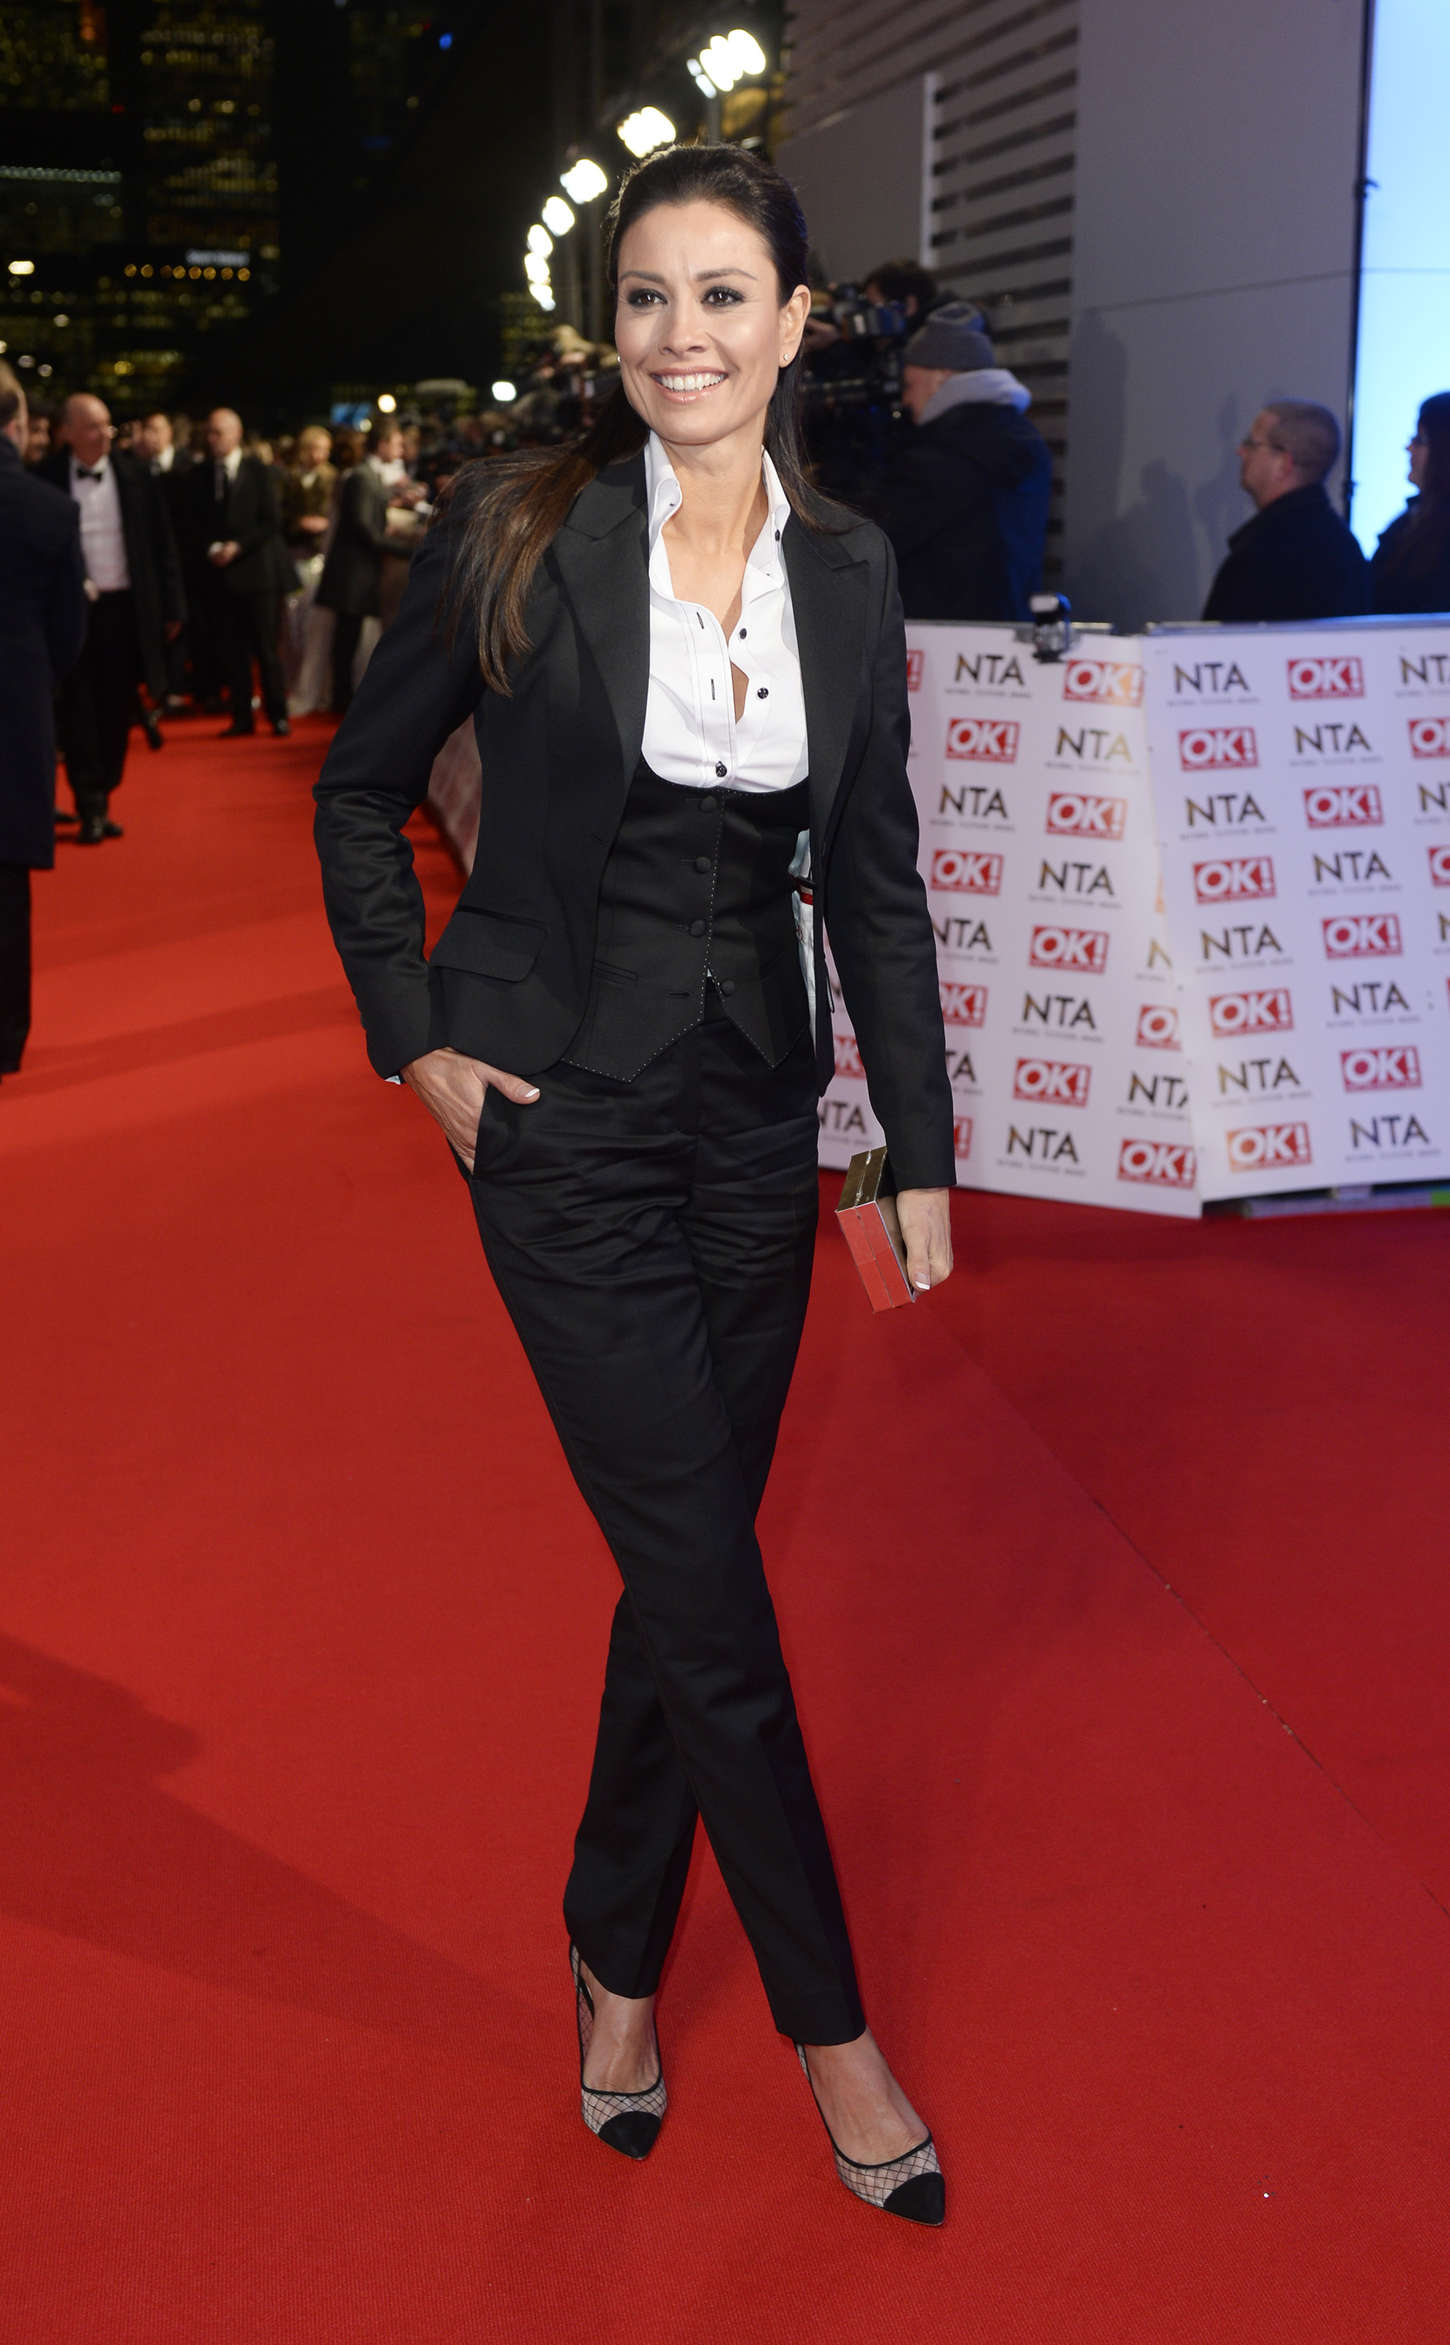 Melanie Sykes National Television Awards in London